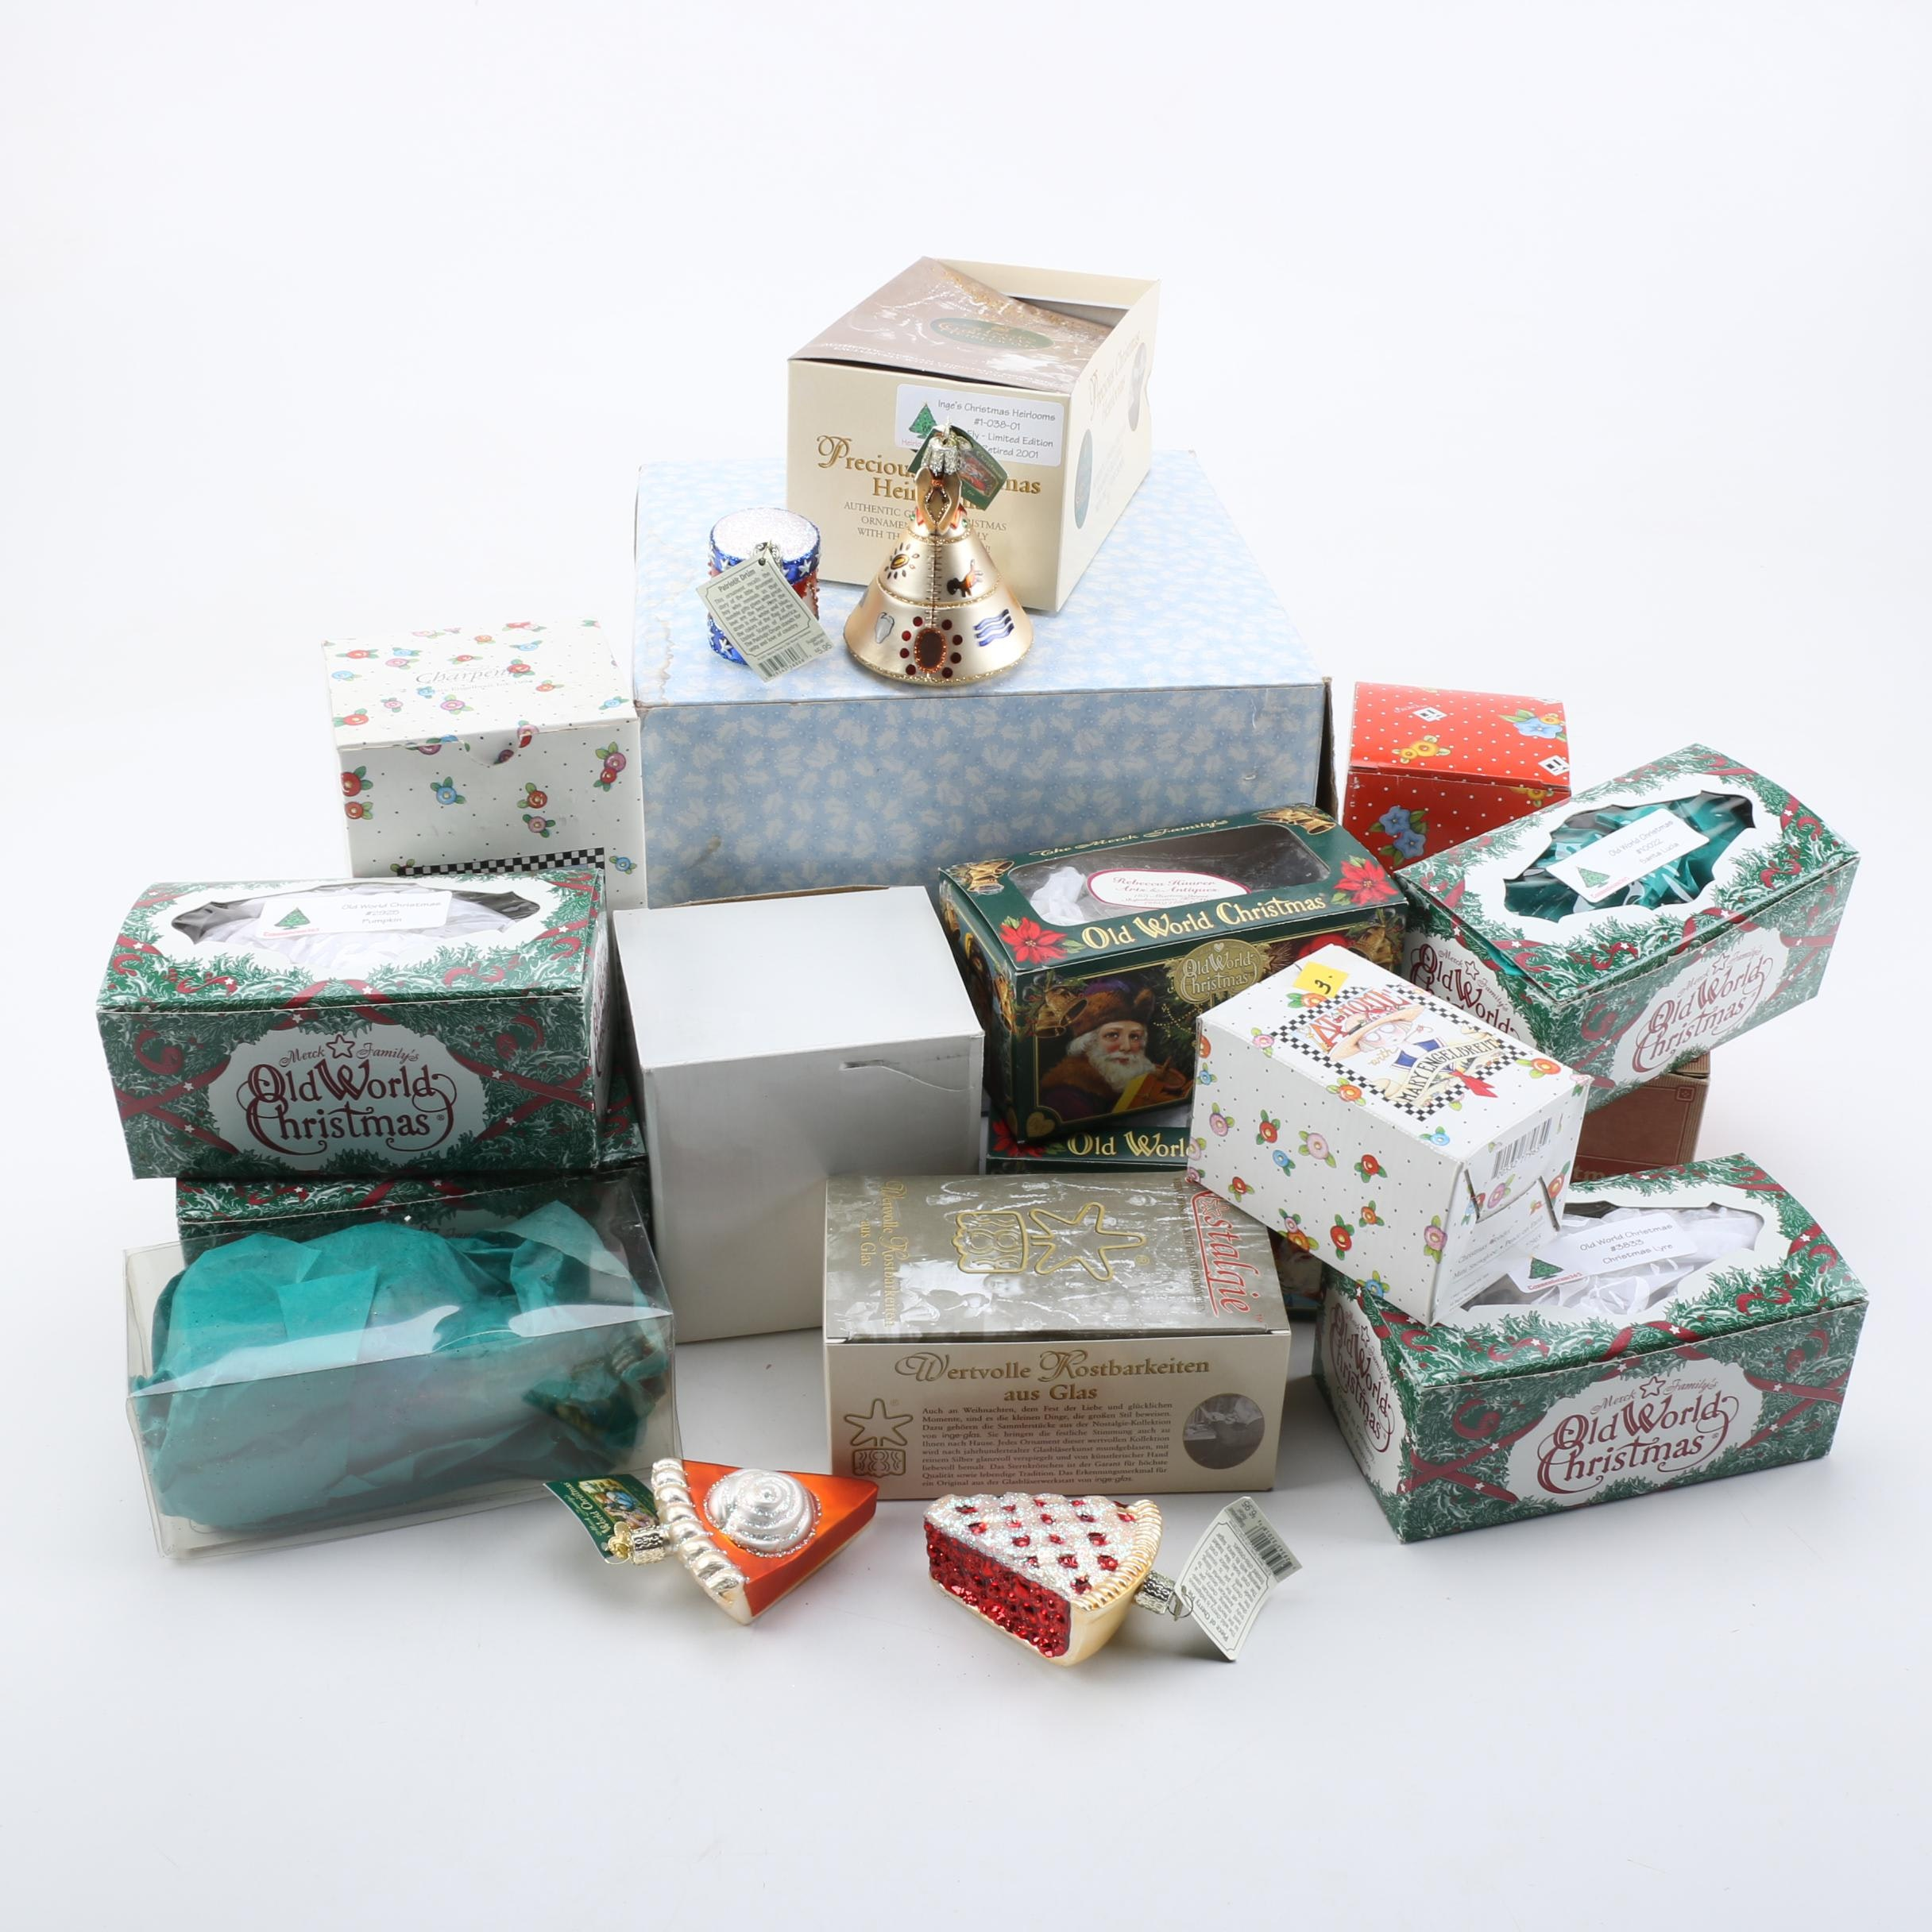 Assorted Christmas Ornaments and Decor